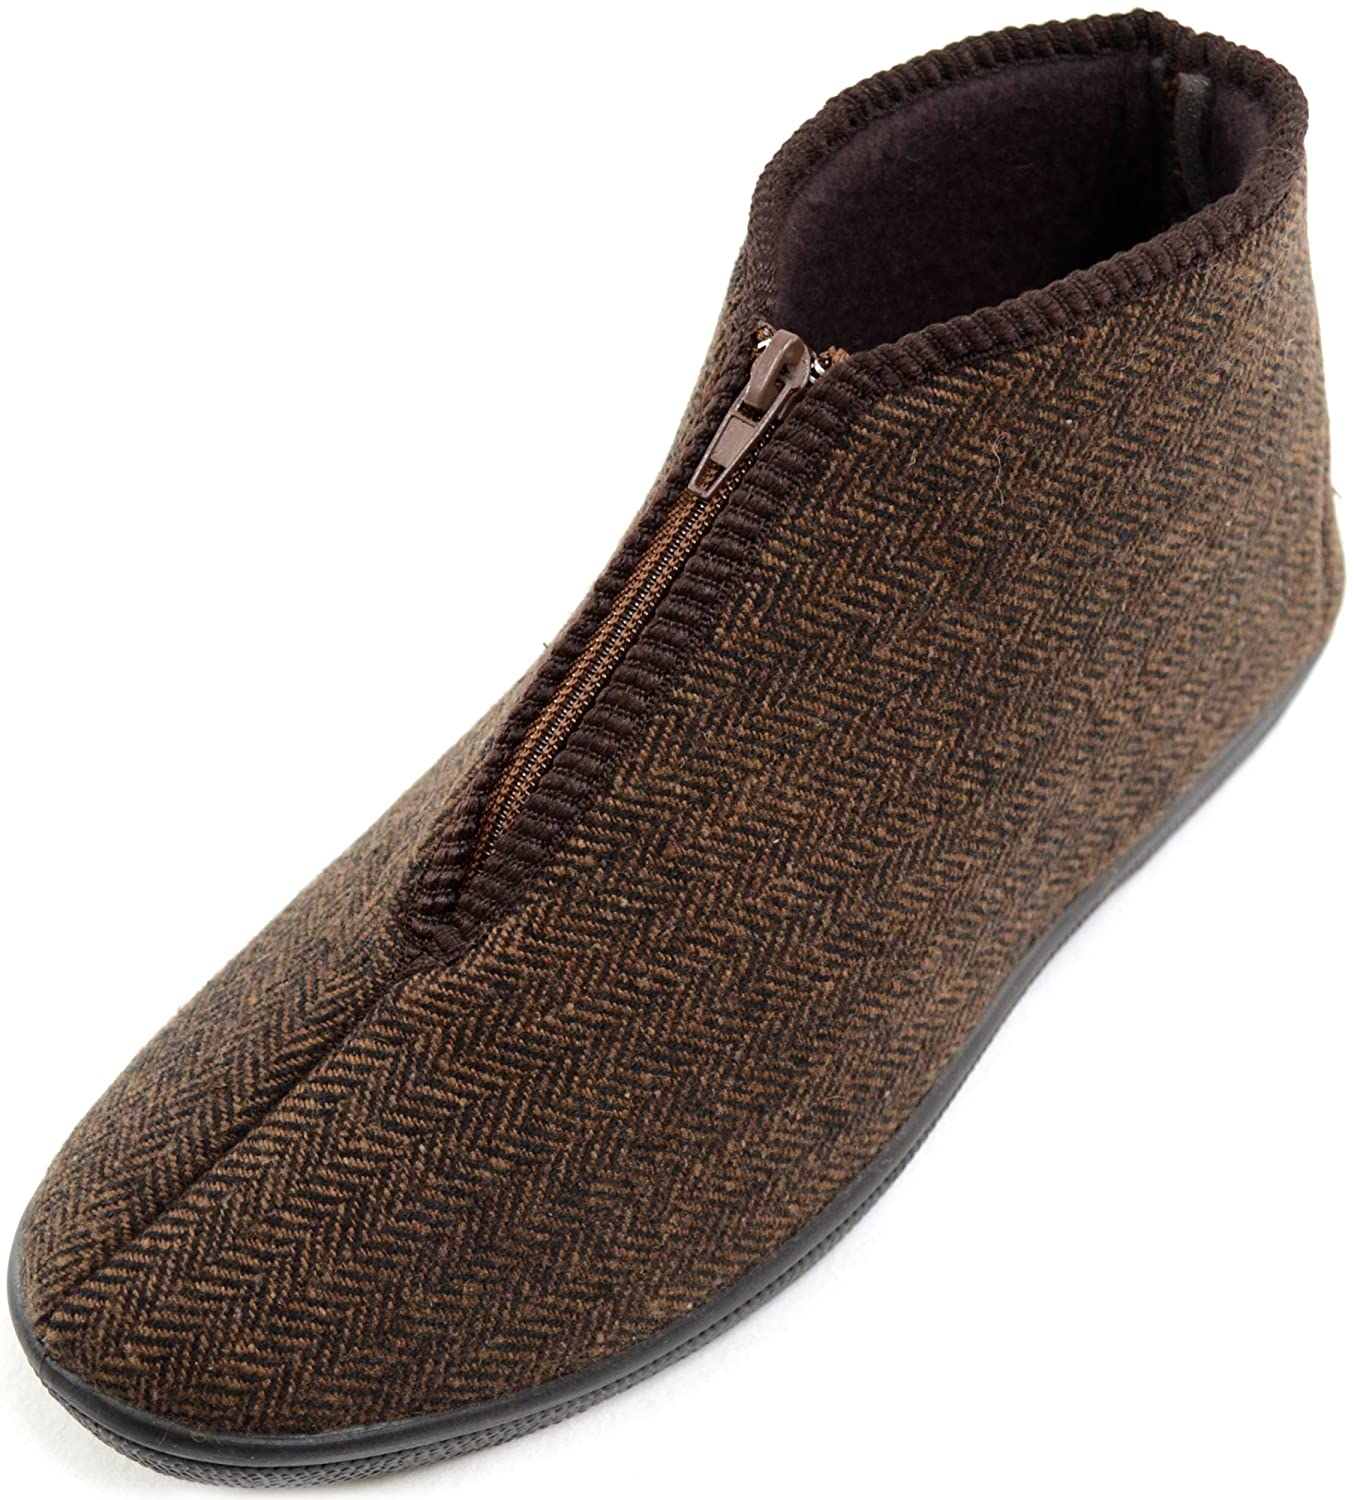 Mens / Gents Herringbone Style Zip Up Boots / Slippers / Indoor Shoes